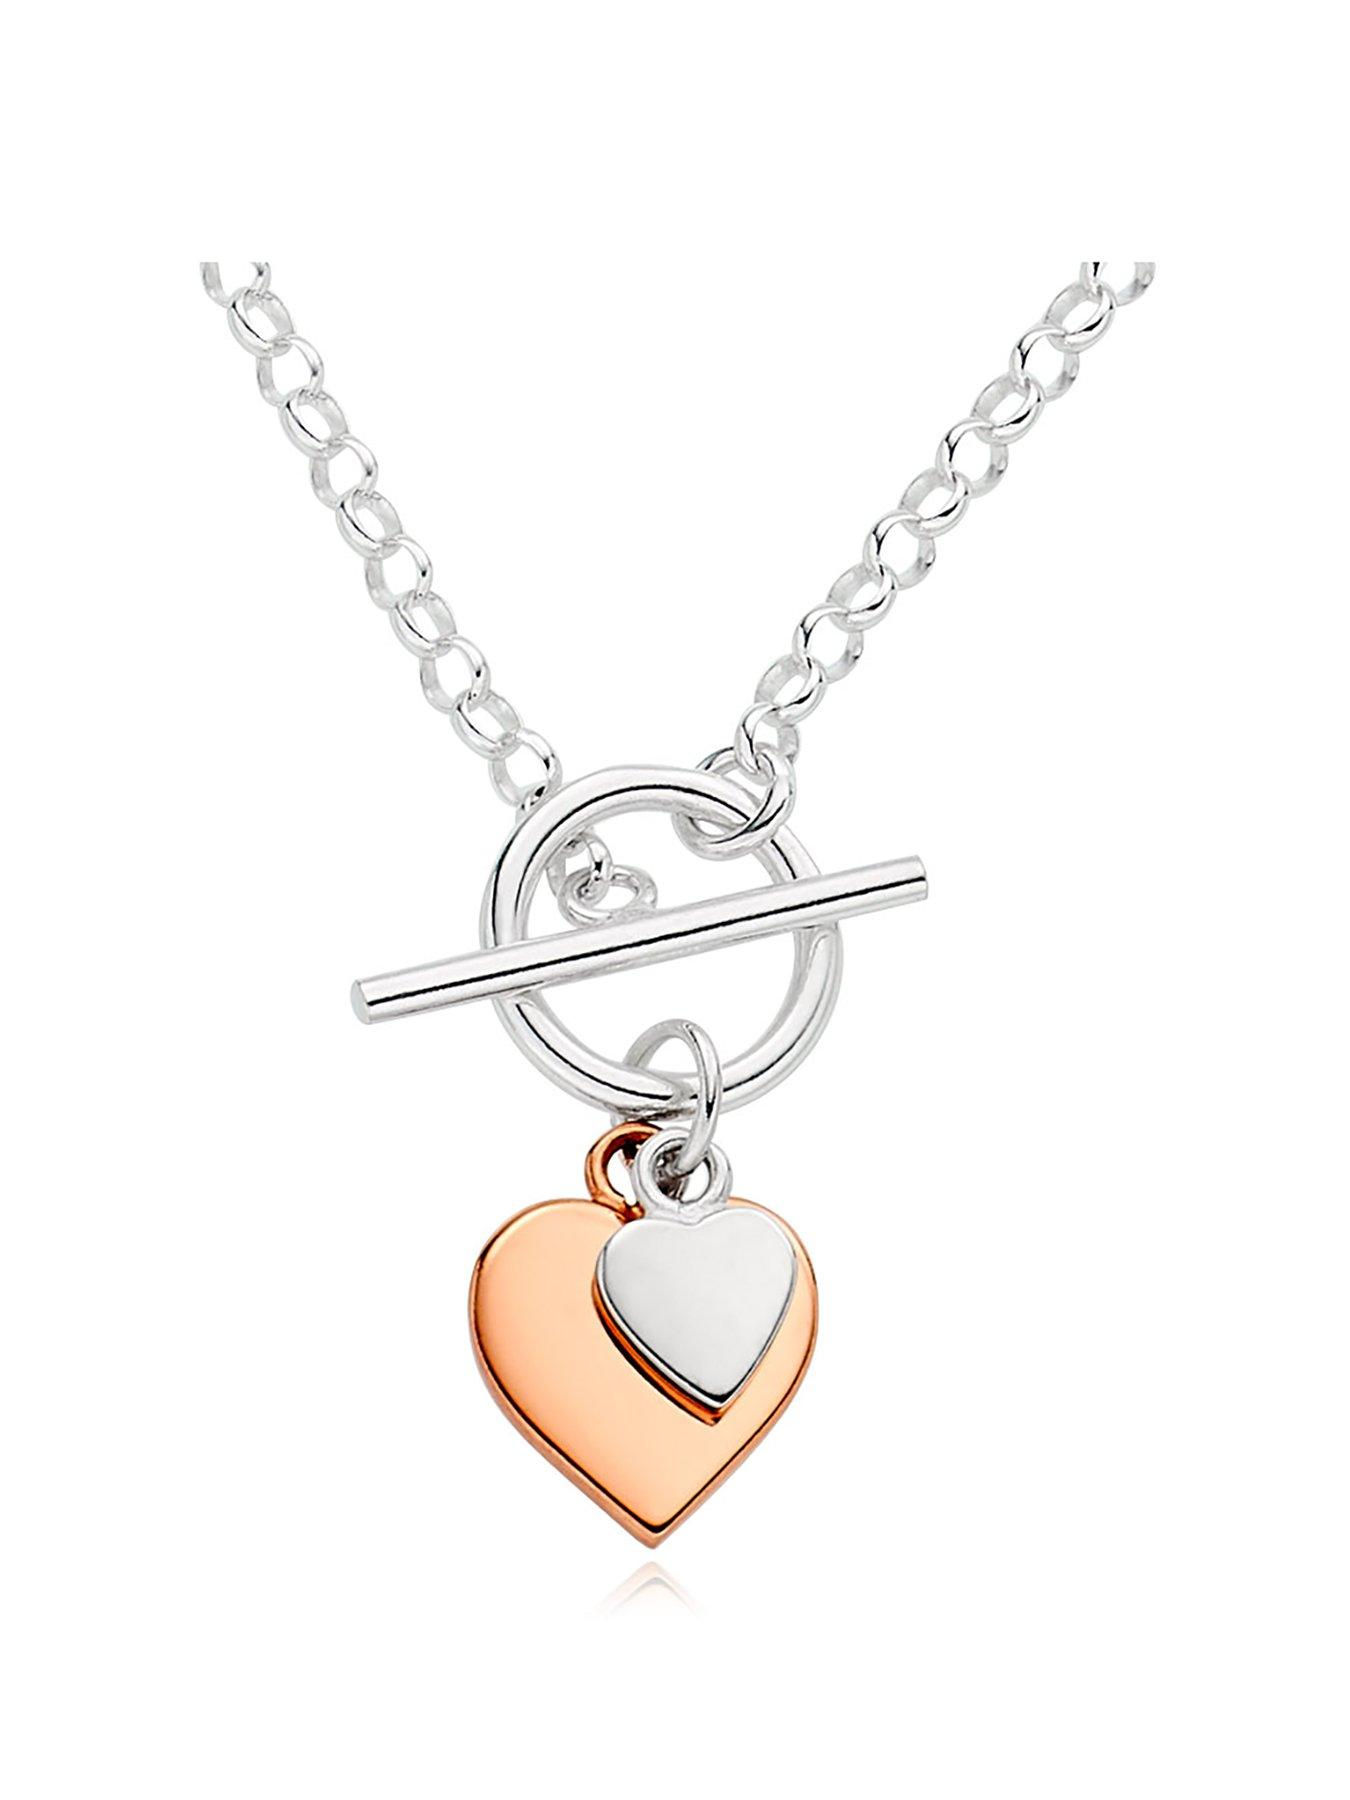 35 to 37 Adjustable Length Children 925 Sterling Silver Hearts Necklace So Chic Jewels